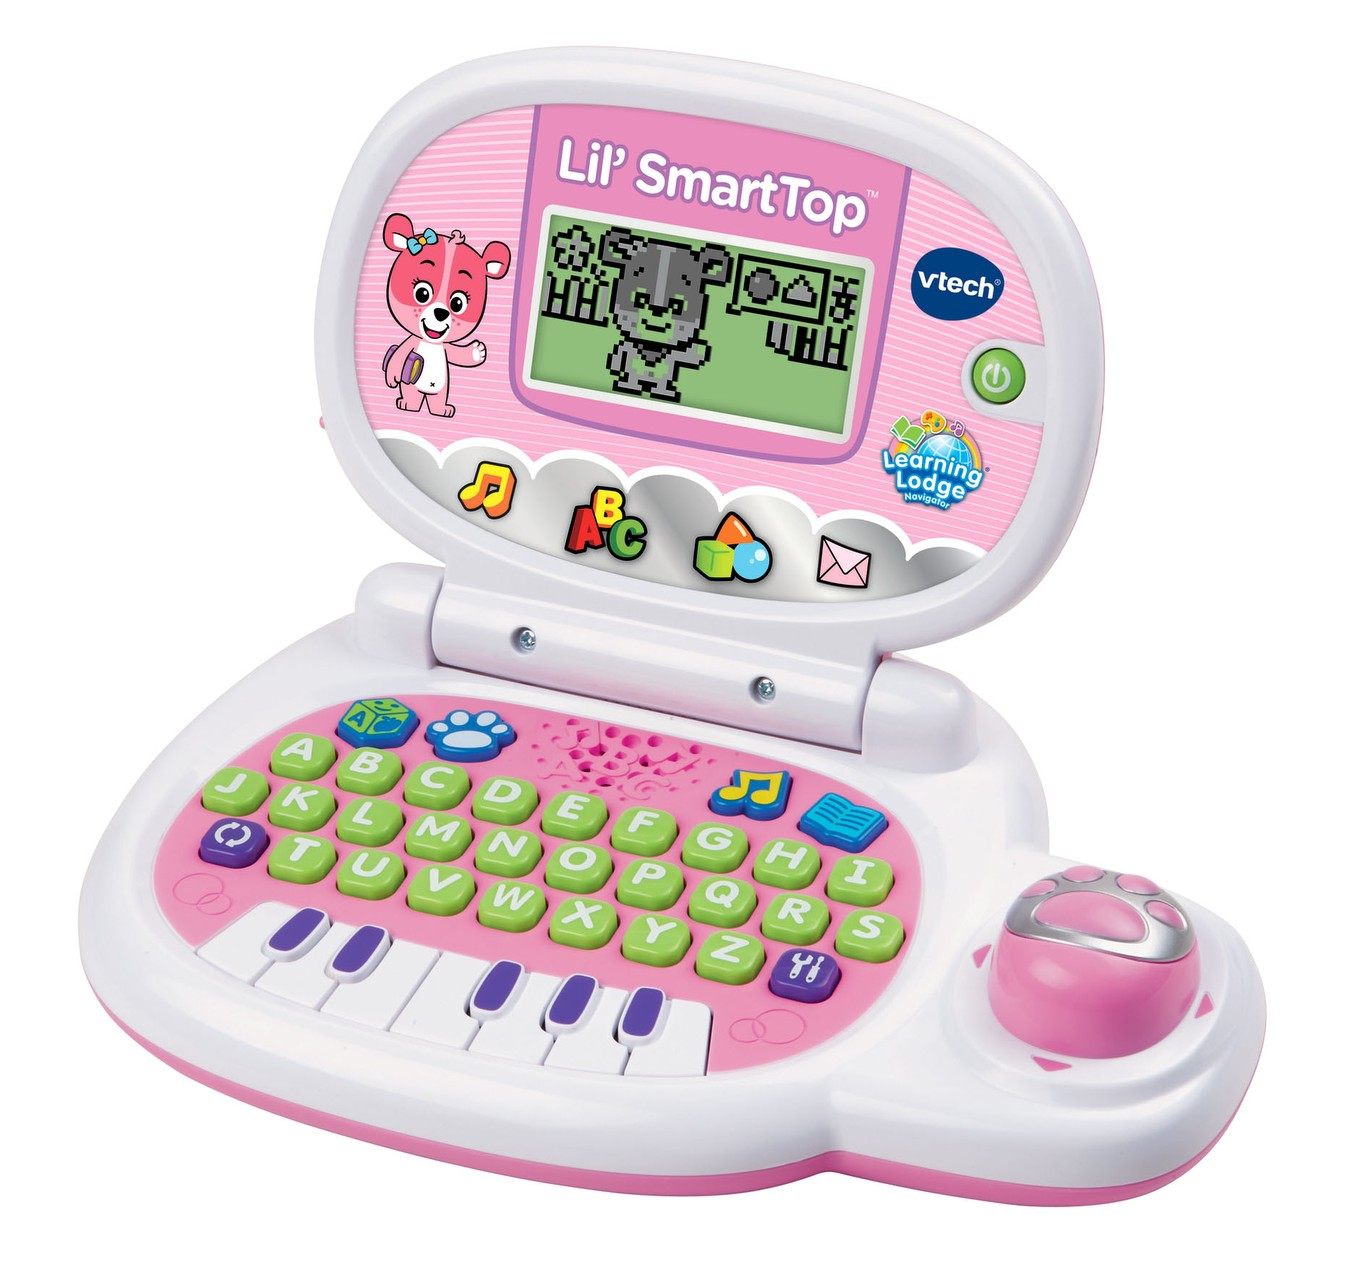 VTech Little Smart Top Pink